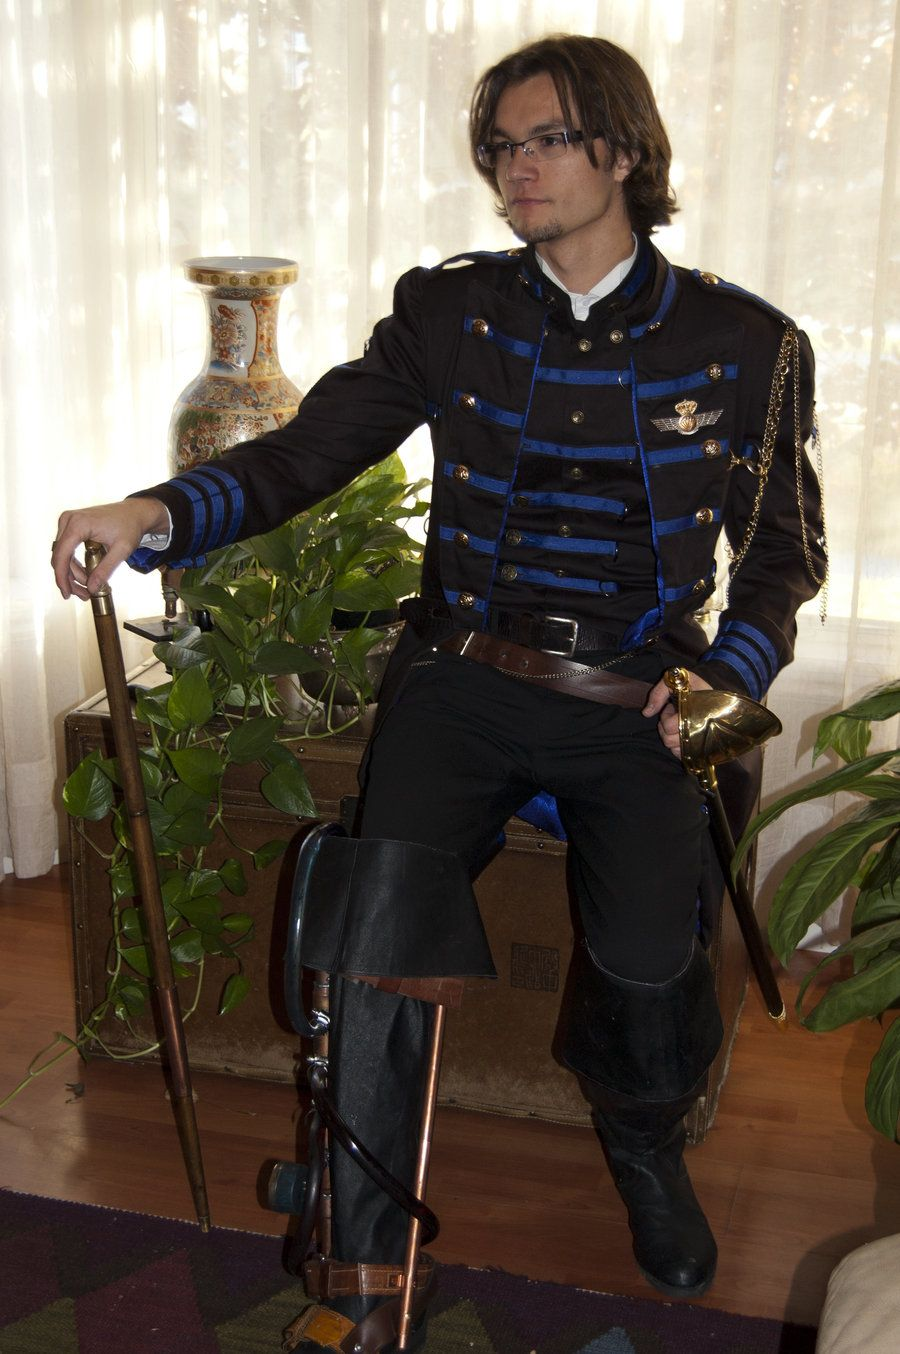 steampunk military uniform | Steampunk Military Command 4 by Kairnth